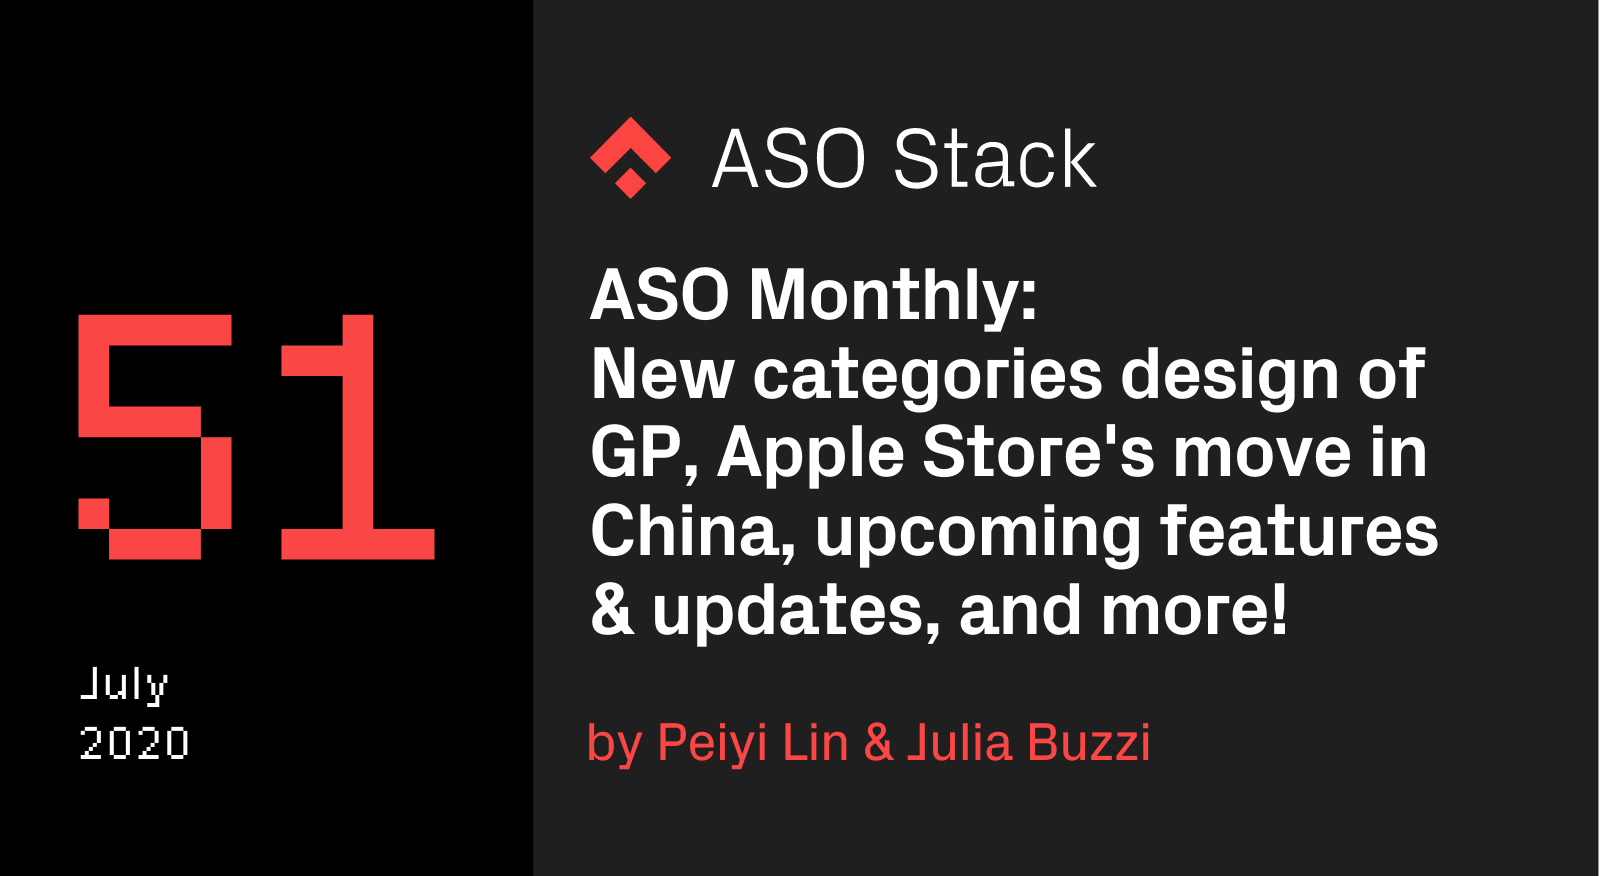 ASO Monthly #51 July 2020: New Categories design in Google Play, Apple Store's move in China, upcoming features & updates, and more!